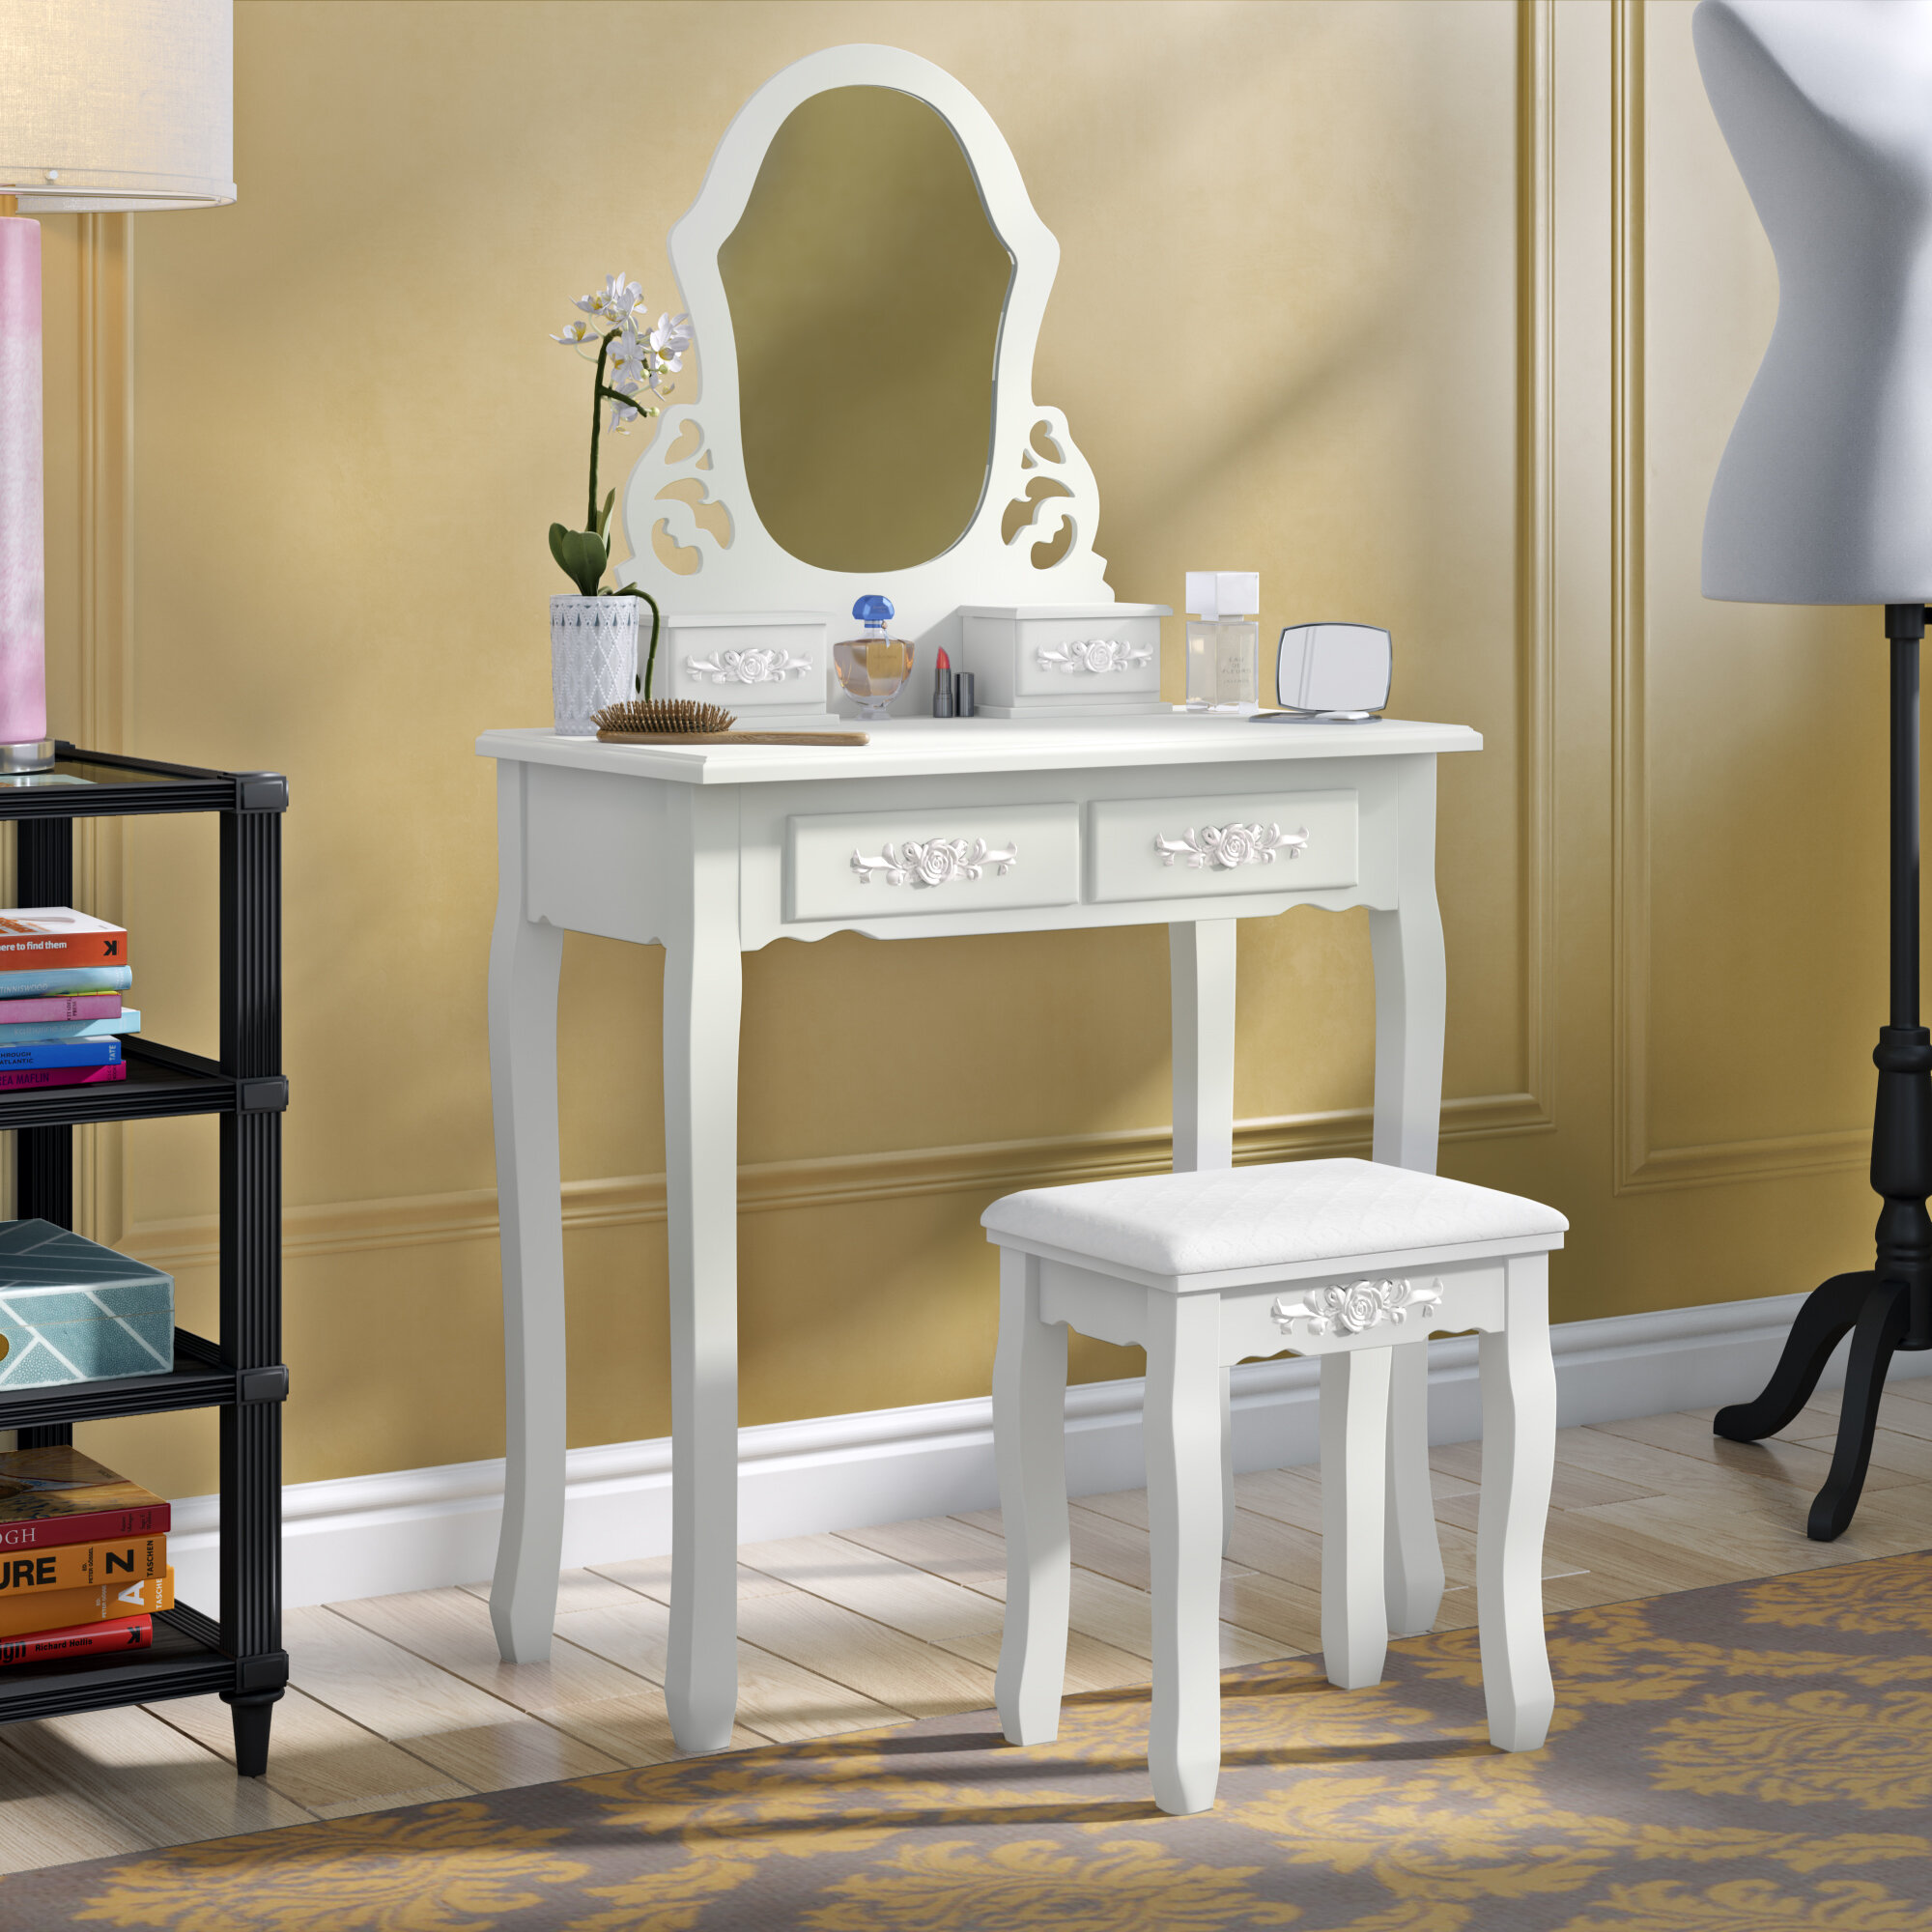 Vanities Home White Bedroom Wood Dressing Table With 4 Drawers White For Young Girls Makeup Table With Oval Mirror Comfort Cushion Stool Vanity Table Set